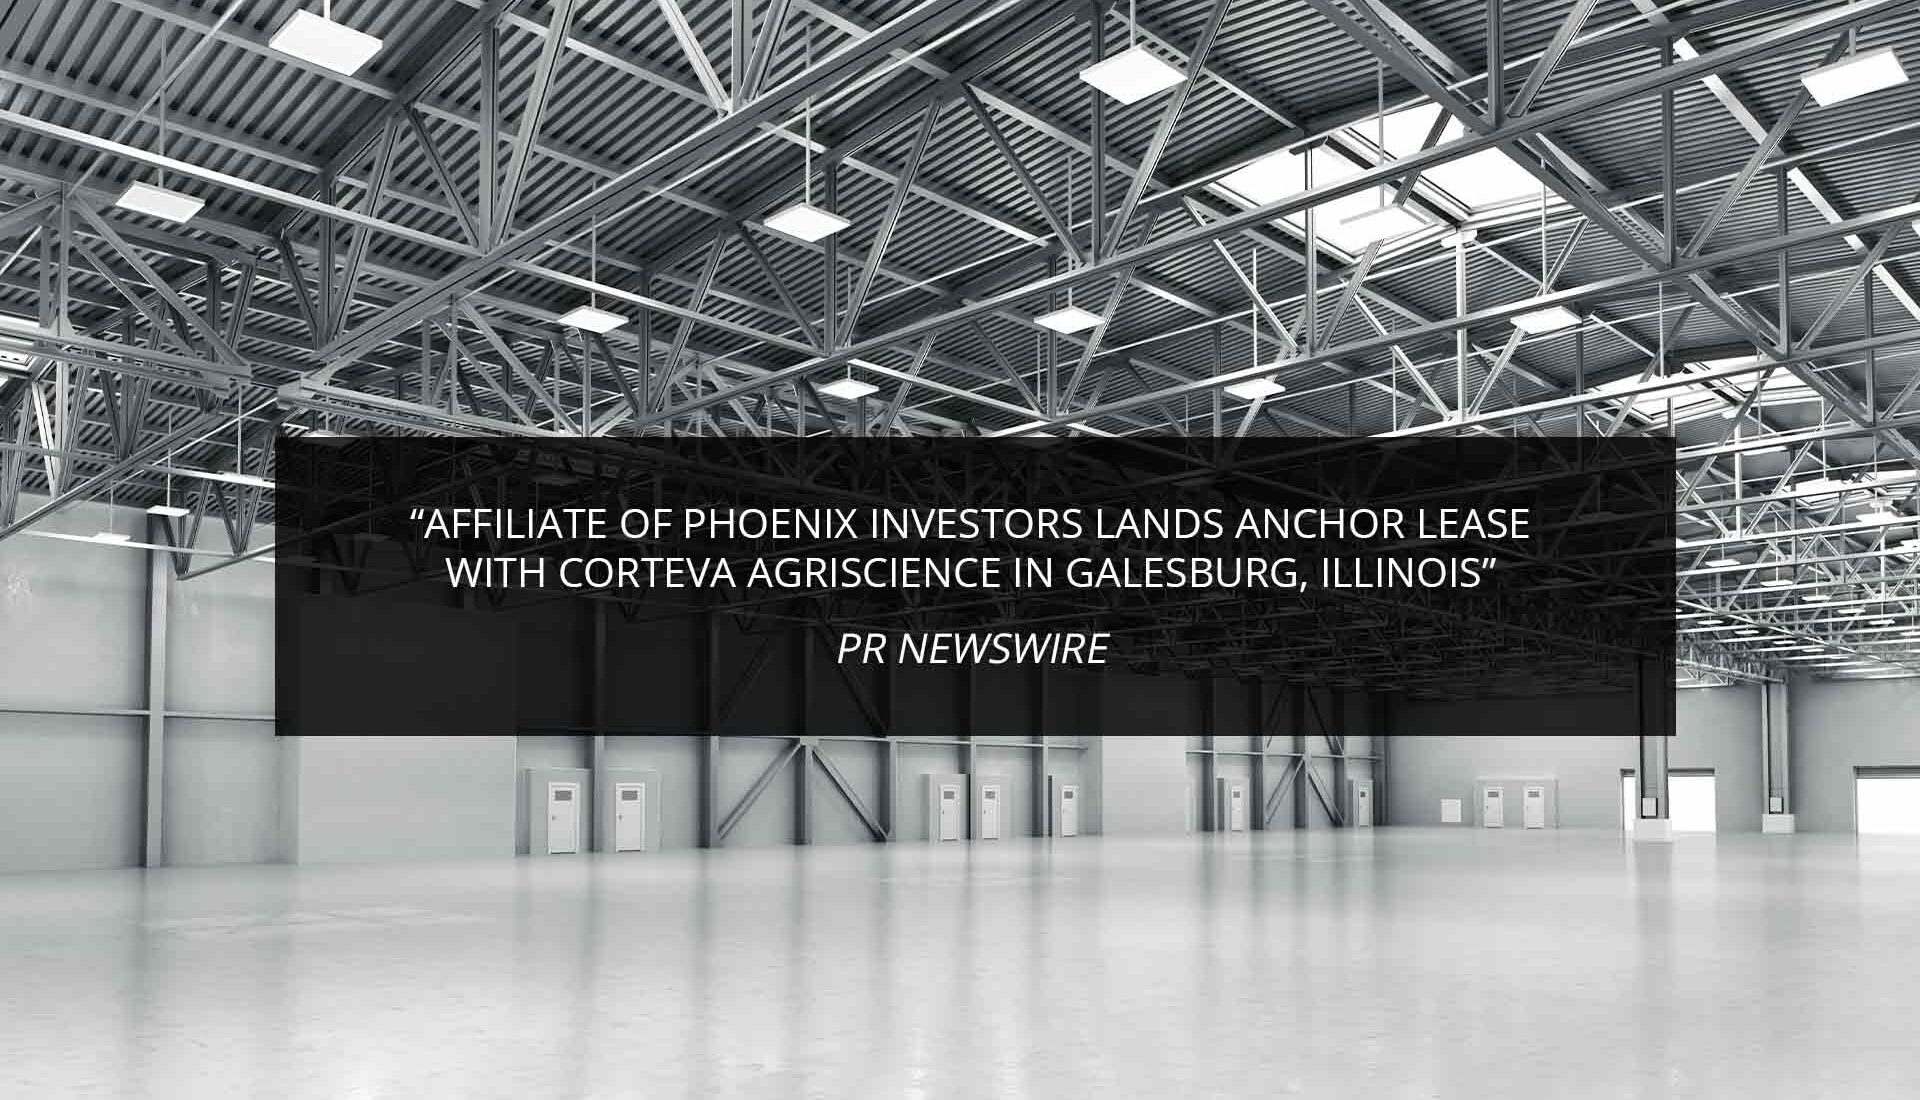 Affiliate Of Phoenix Investors Lands Anchor Lease With Corteva Agriscience In Galesburg, Illinois